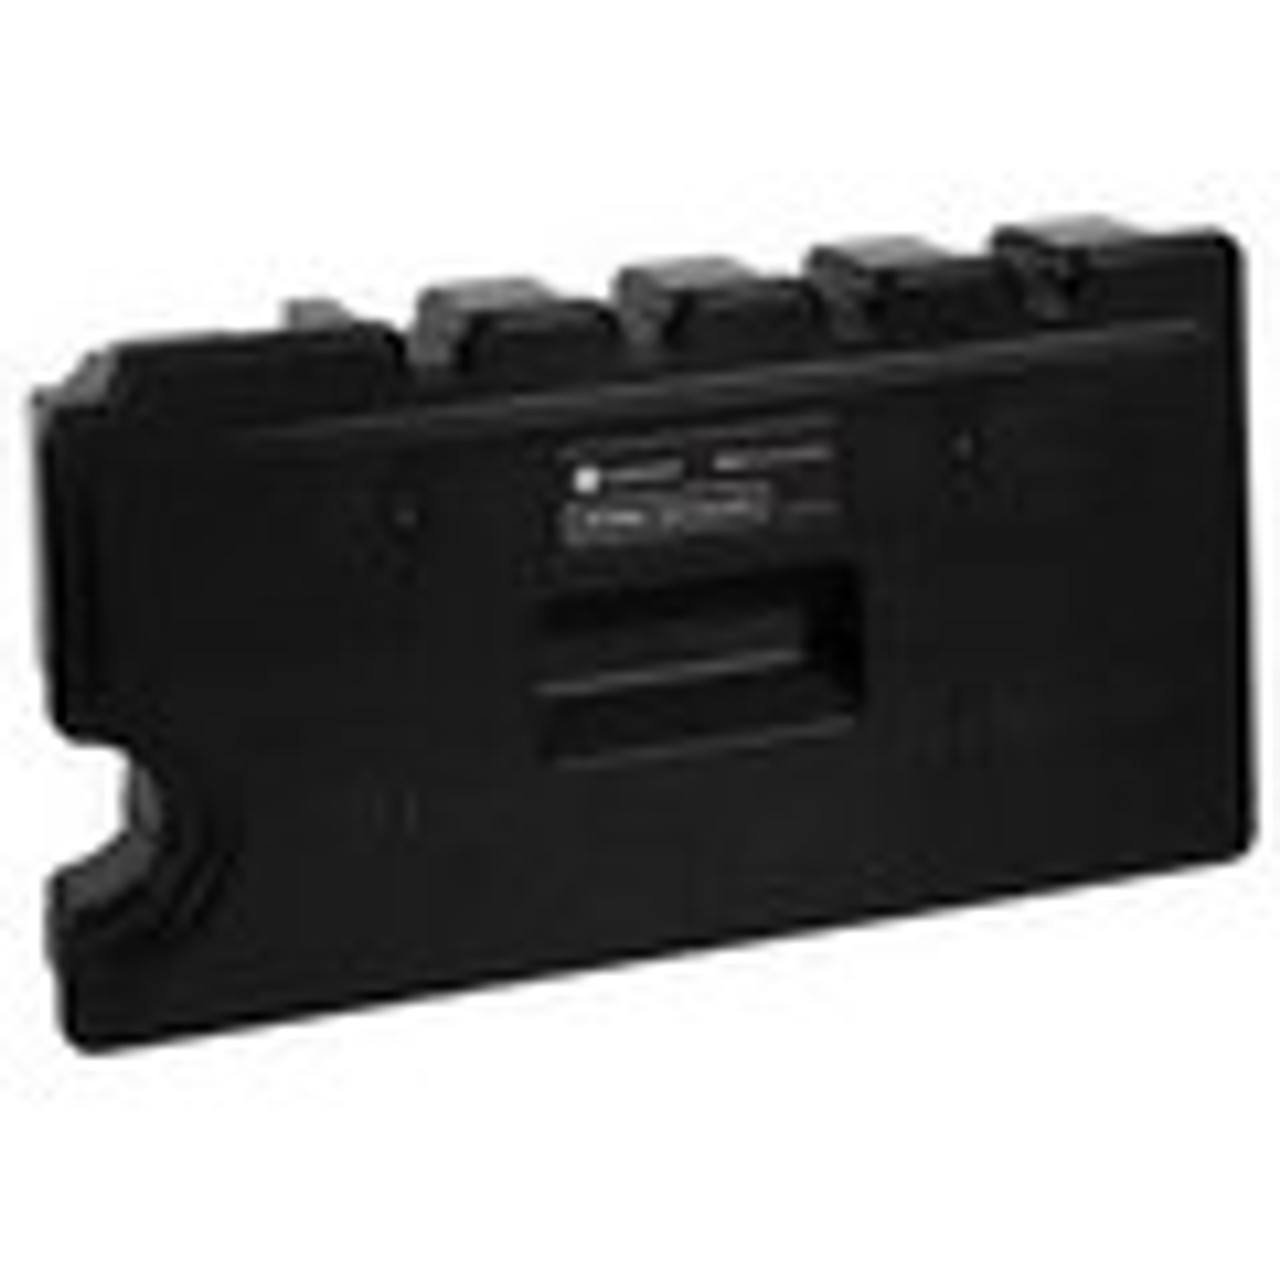 Lexmark 74C0W00 Waste Container OEM